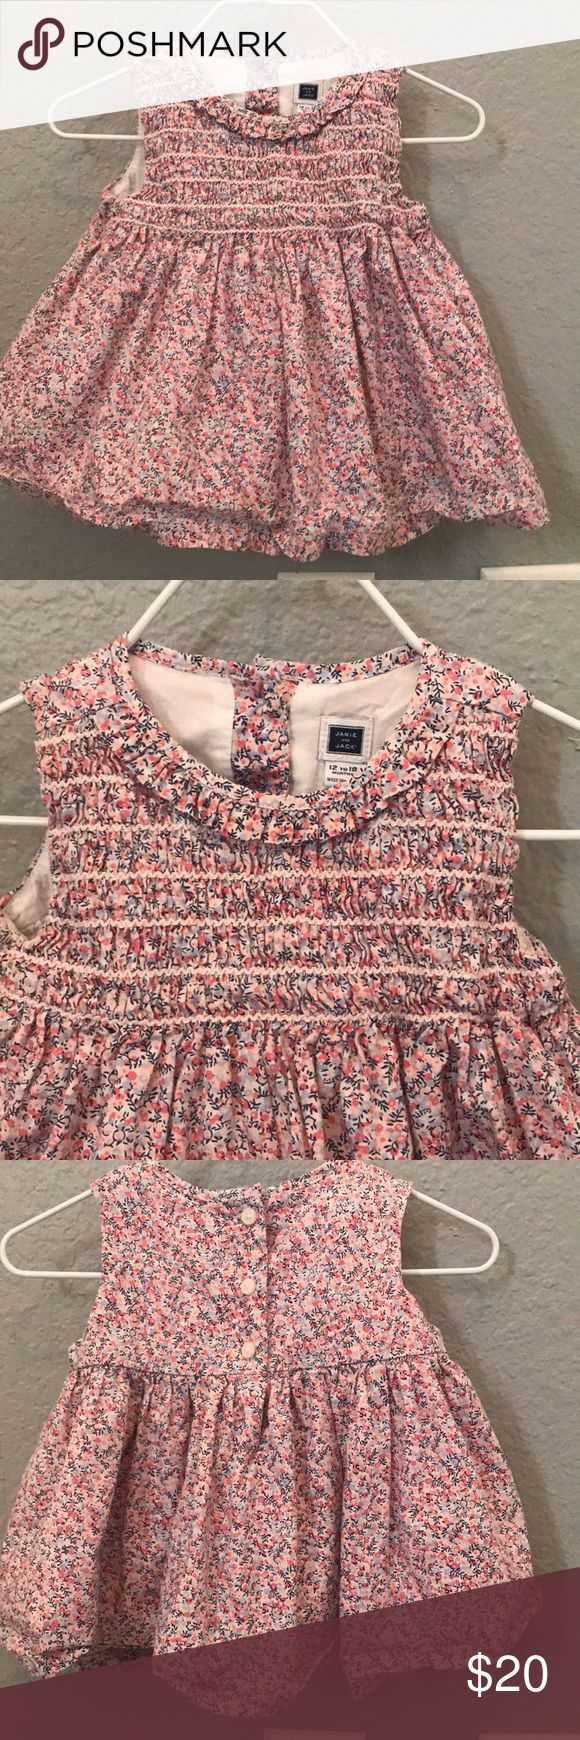 Janie and jack pink bloomer set Pink, navy and lavender floral smocked top with white bloomers. Bows not included. Janie and Jack Dresses Casual